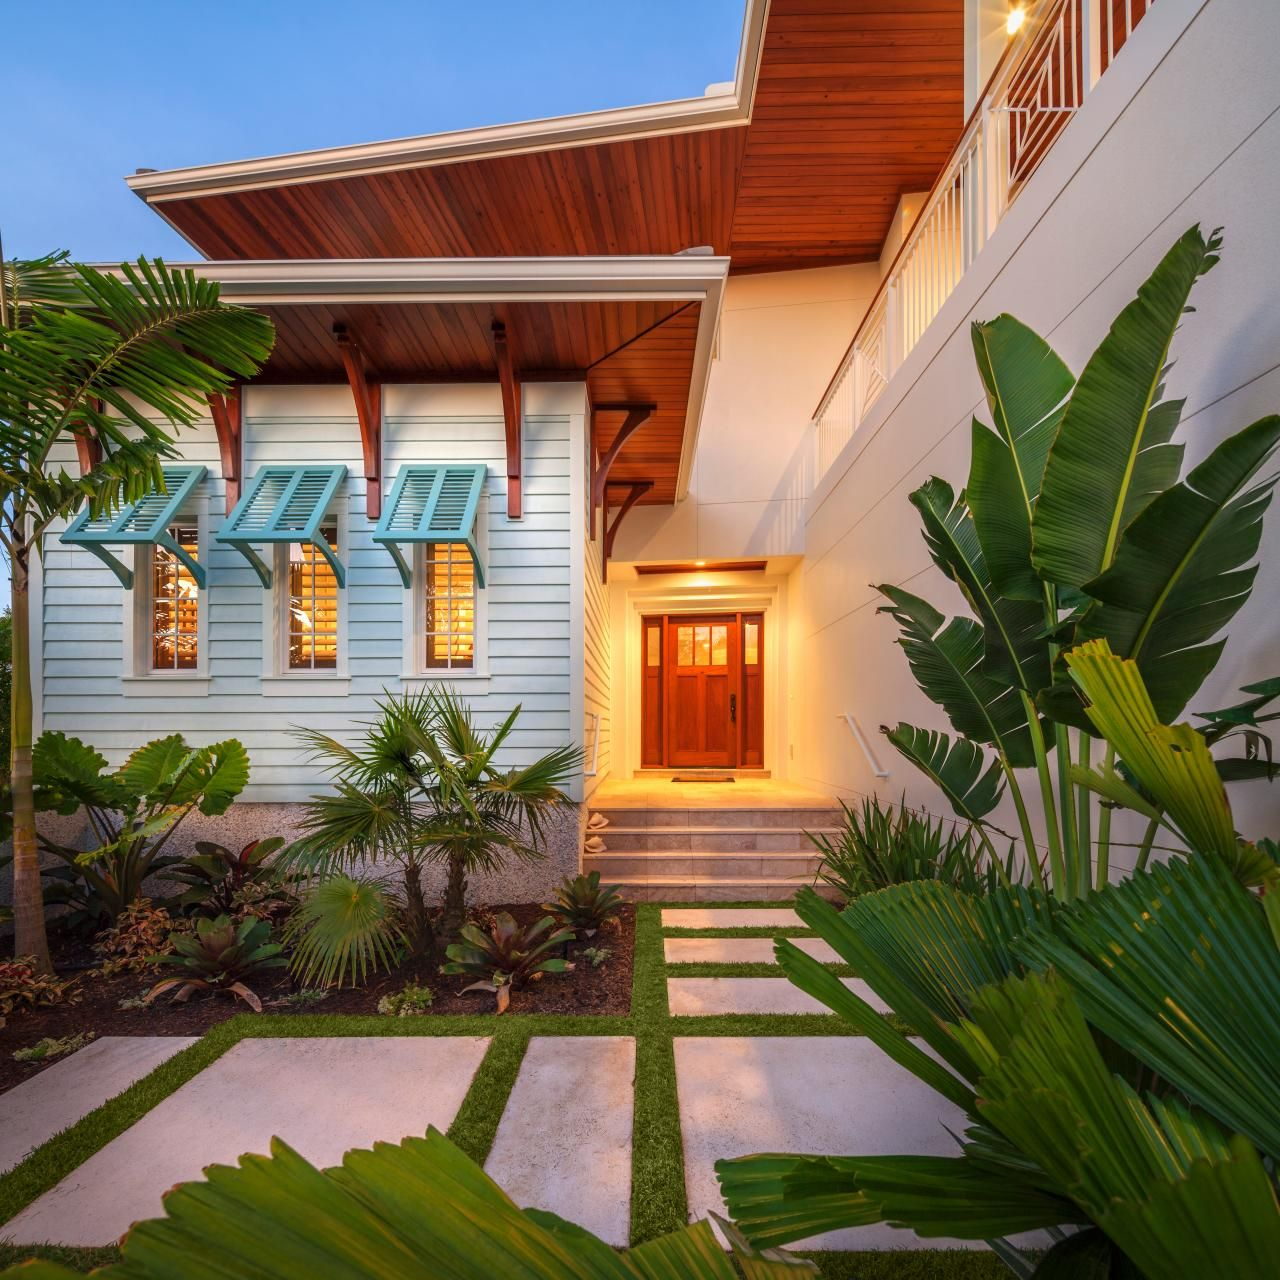 Hgtv Small Front Yard Landscaping Ideas: Large Concrete Slabs Carve Out A Walkway To This Stunning